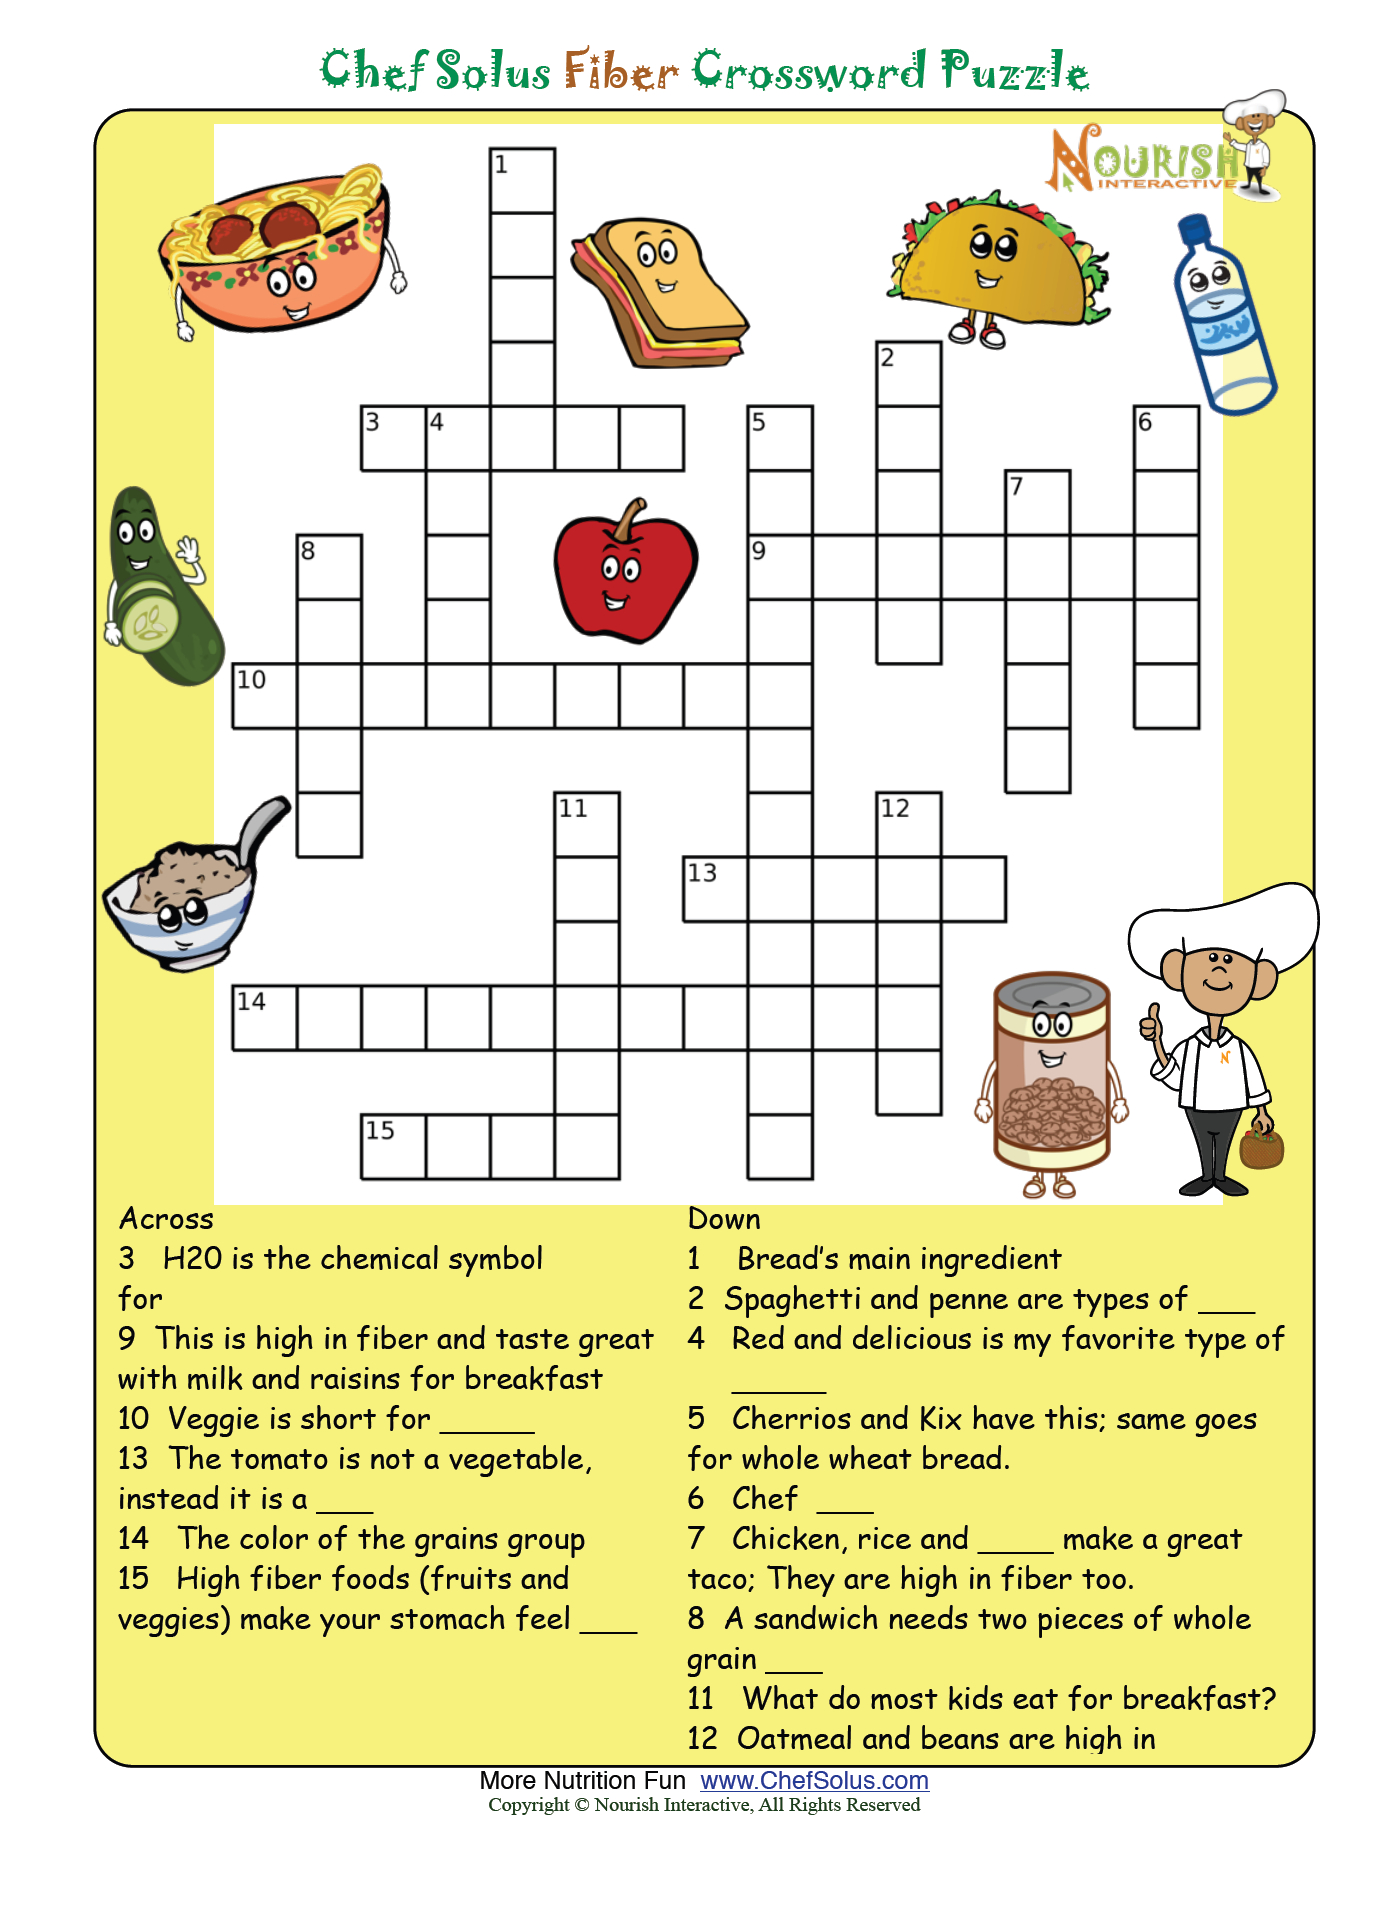 Fiber Puzzle * Please Make Sure To Print The Answer Key As Well - Nutrition Printable Puzzle